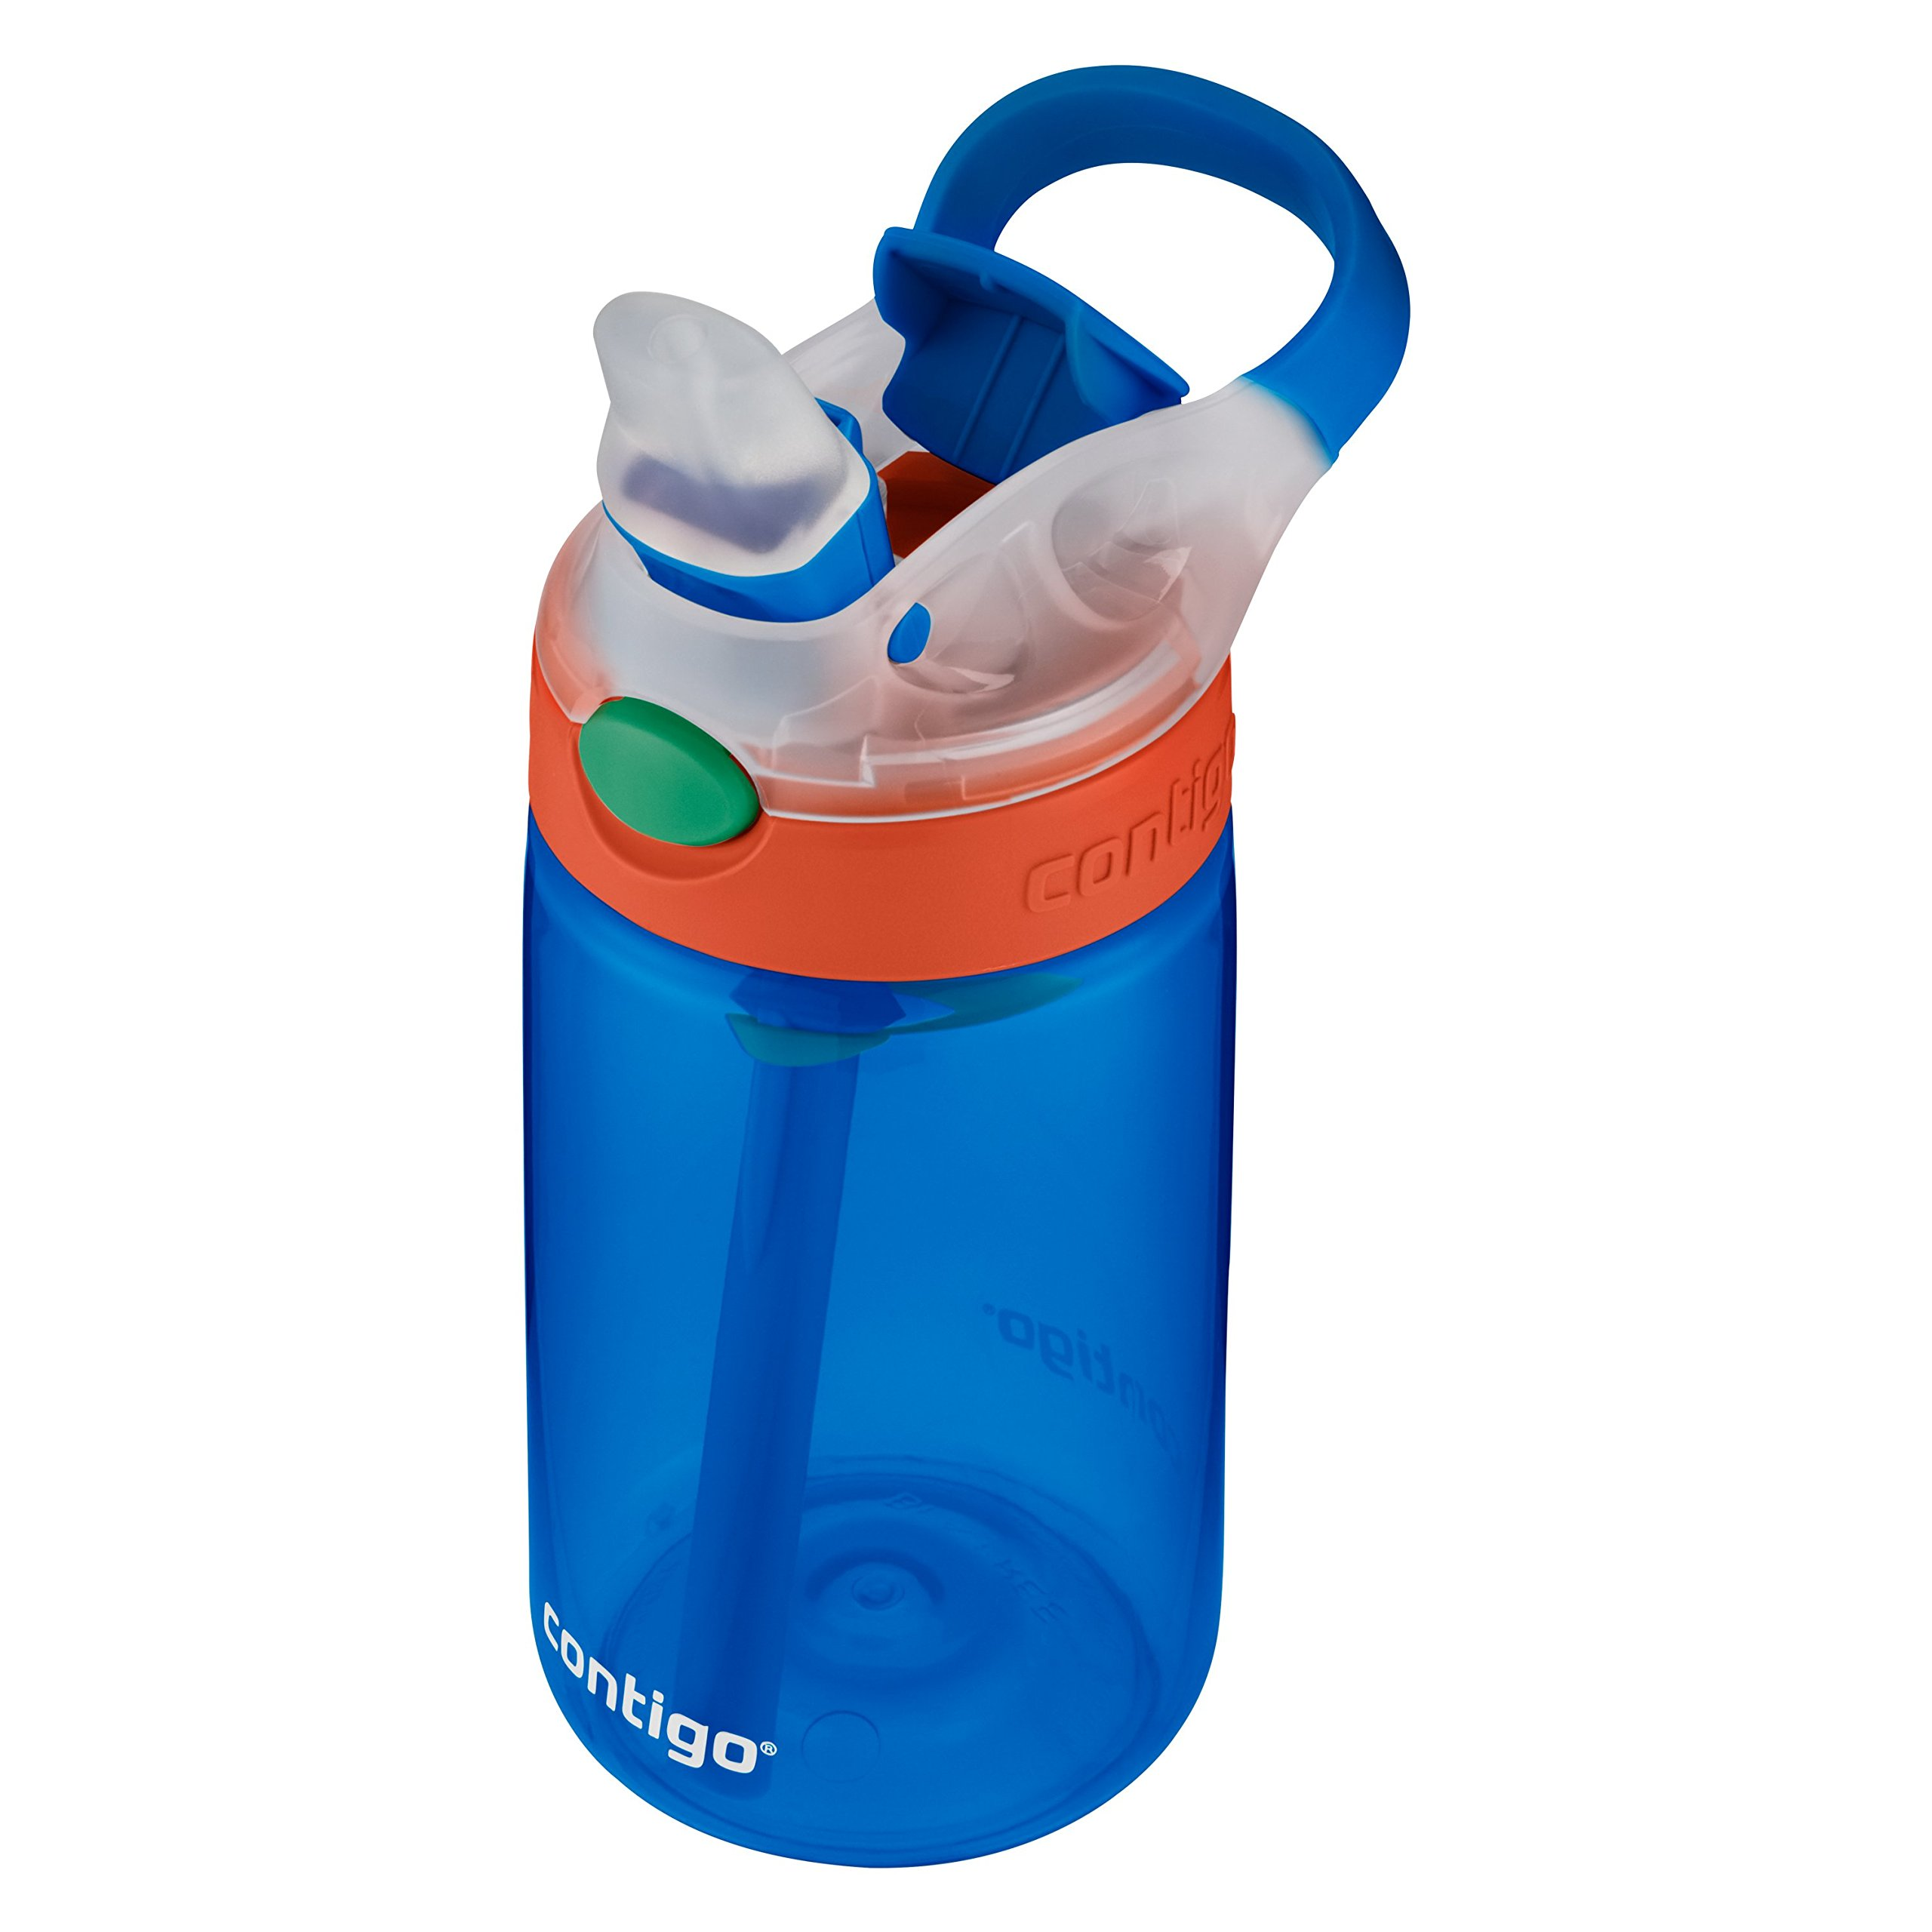 Contigo Kids Gizmo Flip Water Bottles, 14oz, French Blue/Coral, 2-Pack by Contigo (Image #2)